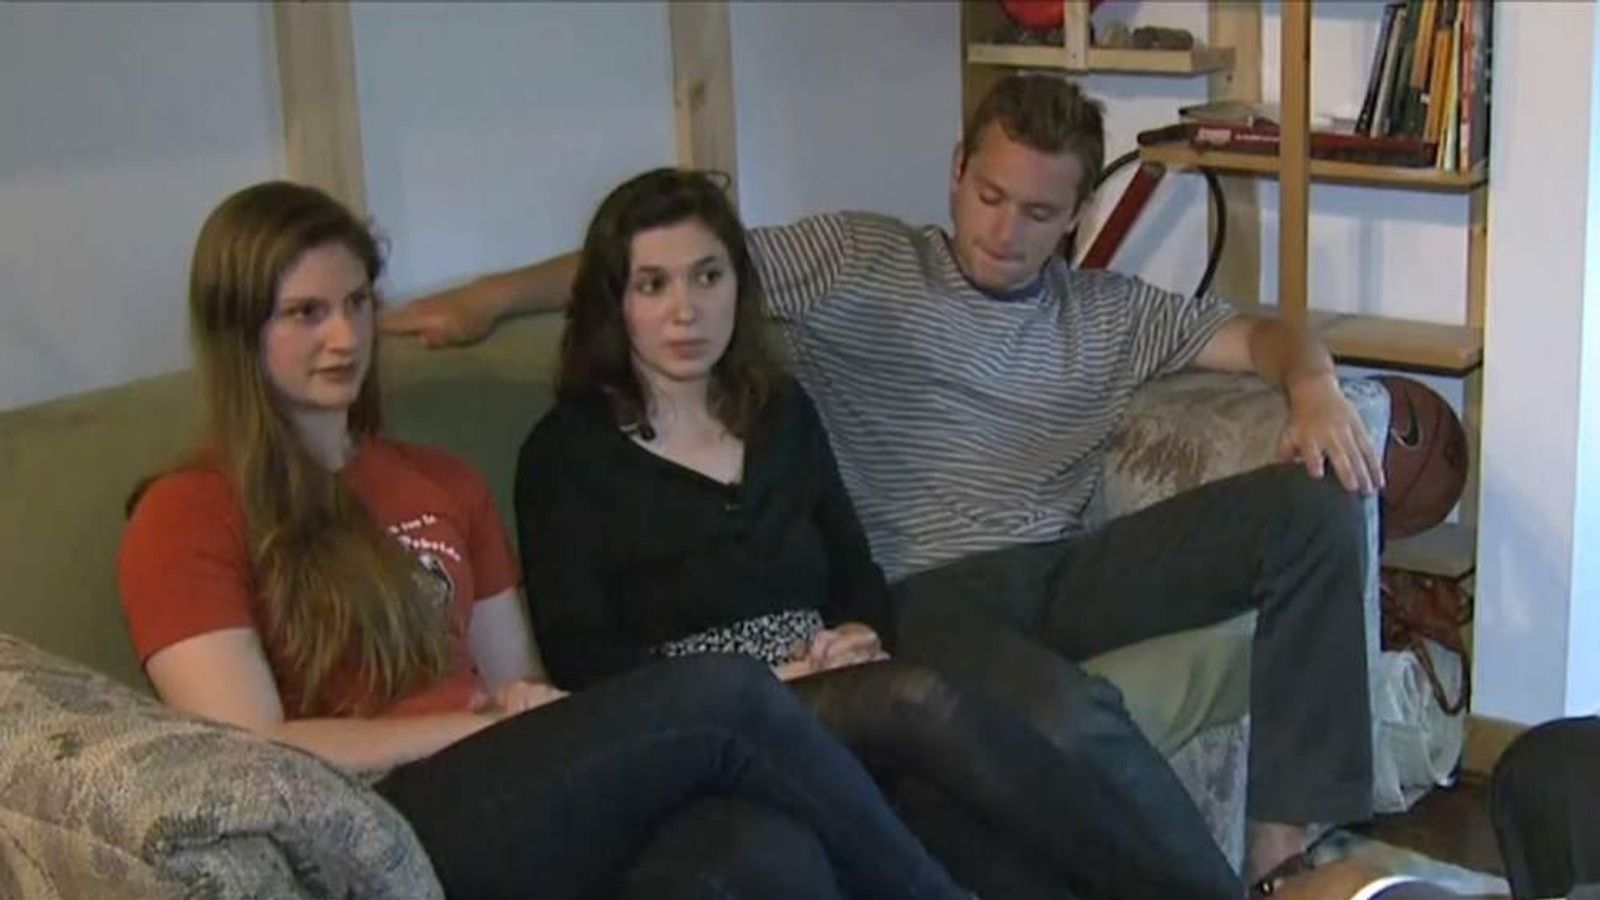 Roommates find $40,000 stuffed in old couch